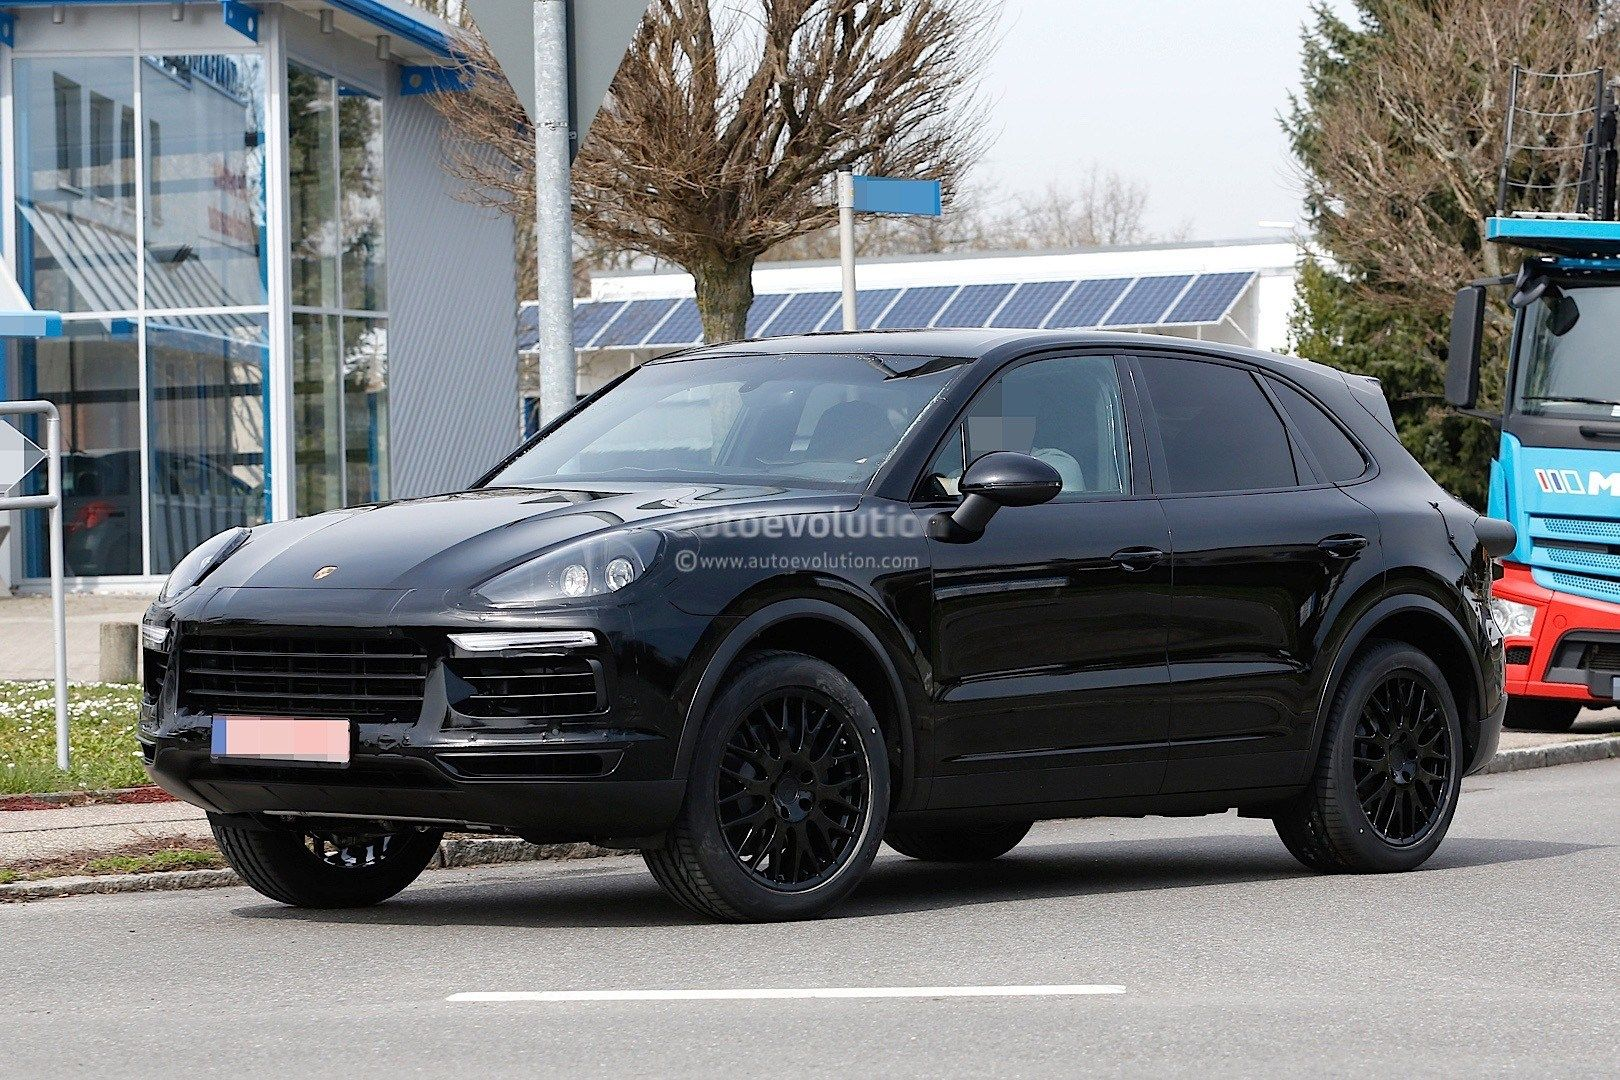 2018 porsche cayenne rendering spy shots price 2018 2019 car review